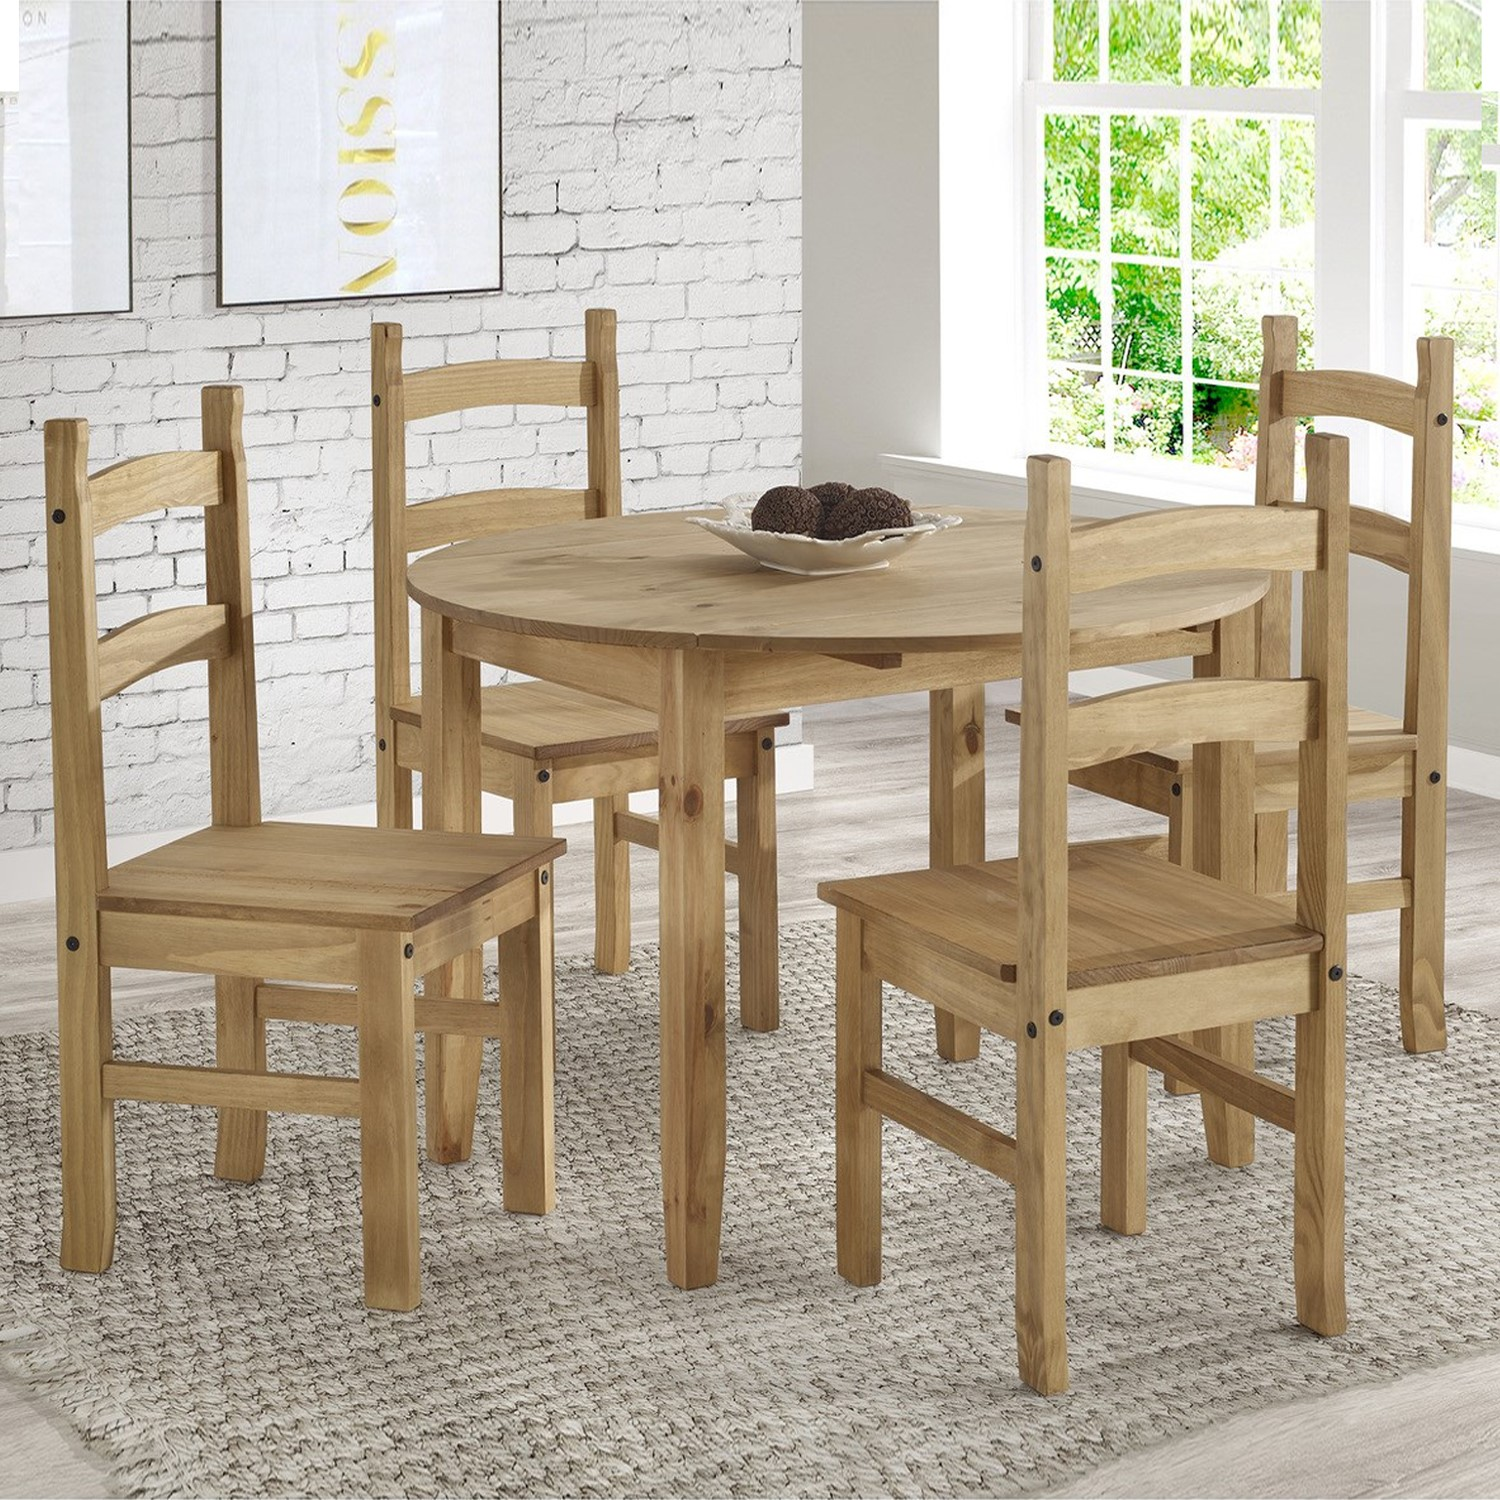 Prime Corona Mexican Solid Pine Round Drop Leaf Dining Table Set With 4 Chairs Ncnpc Chair Design For Home Ncnpcorg